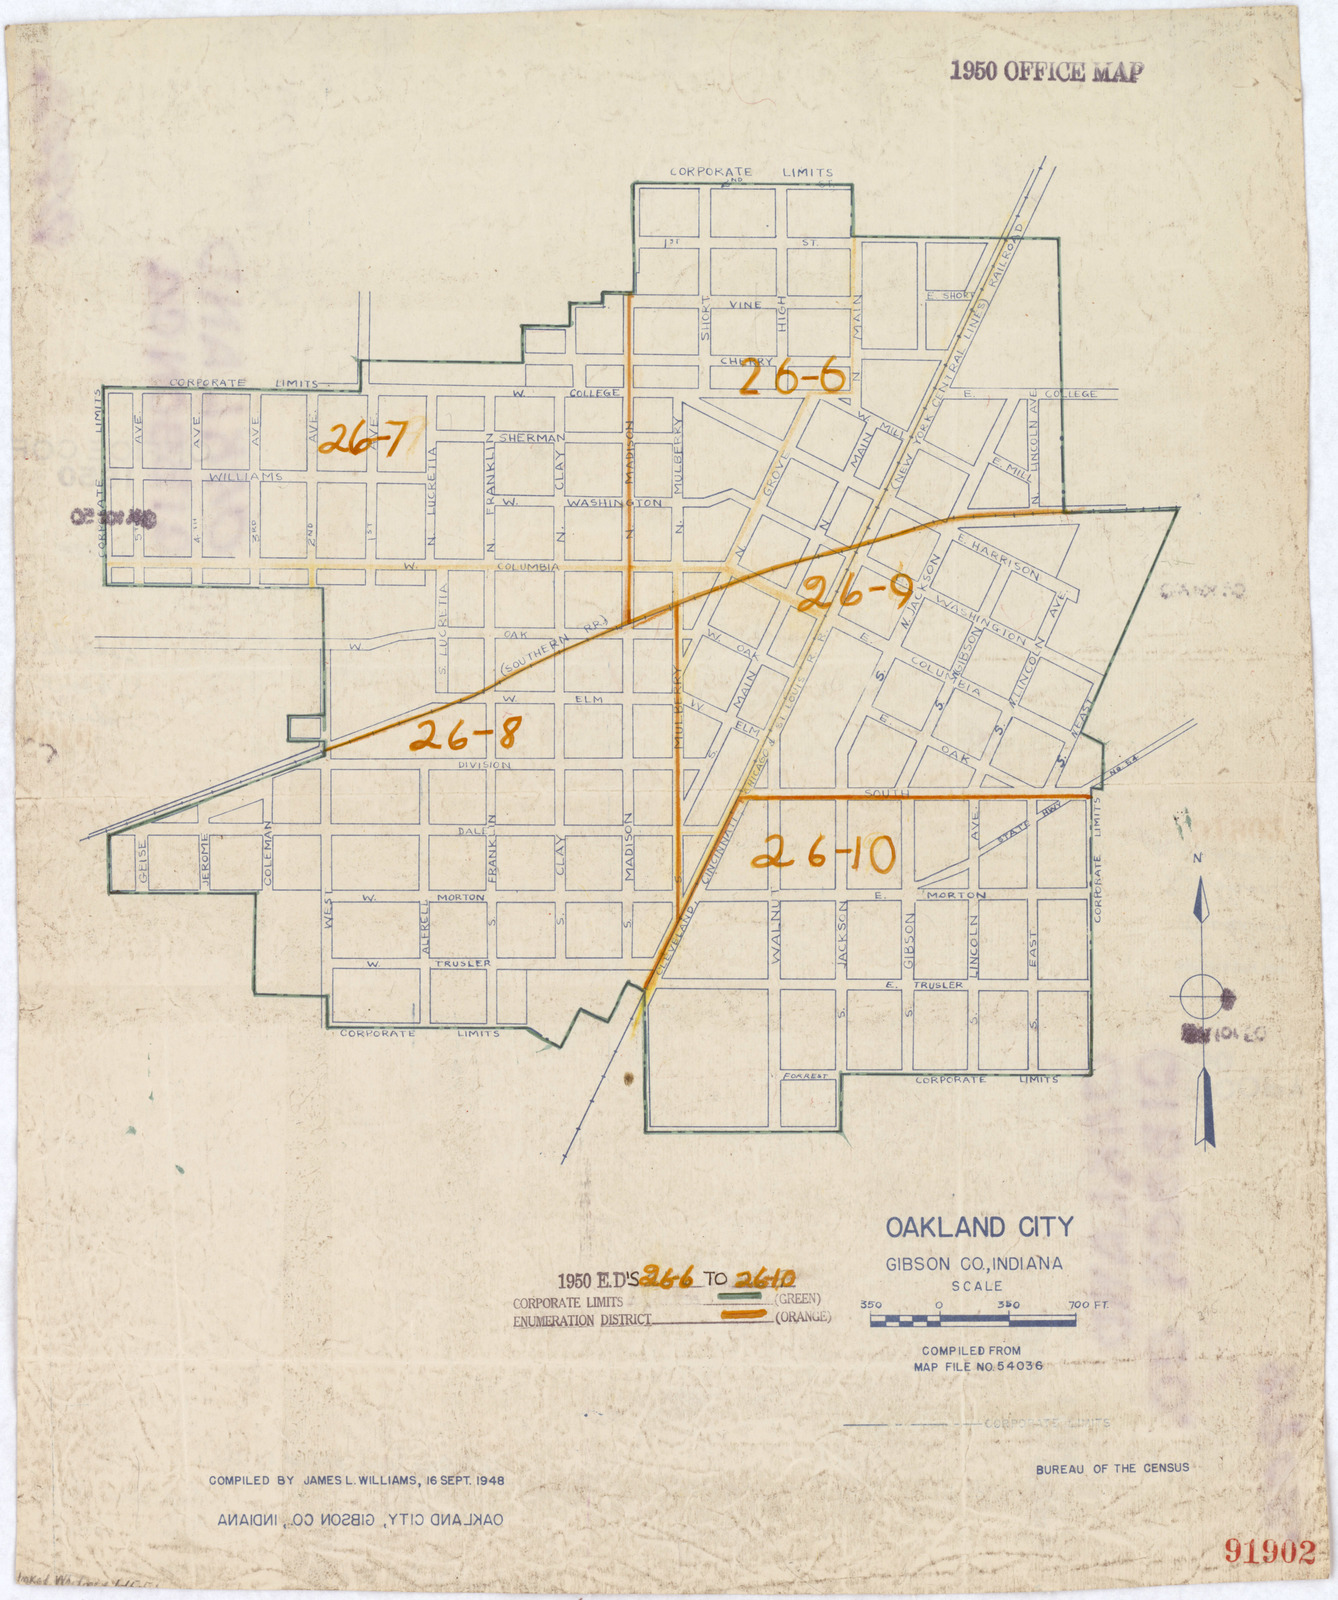 Gibson County Indiana Map.1950 Census Enumeration District Maps Indiana In Gibson County